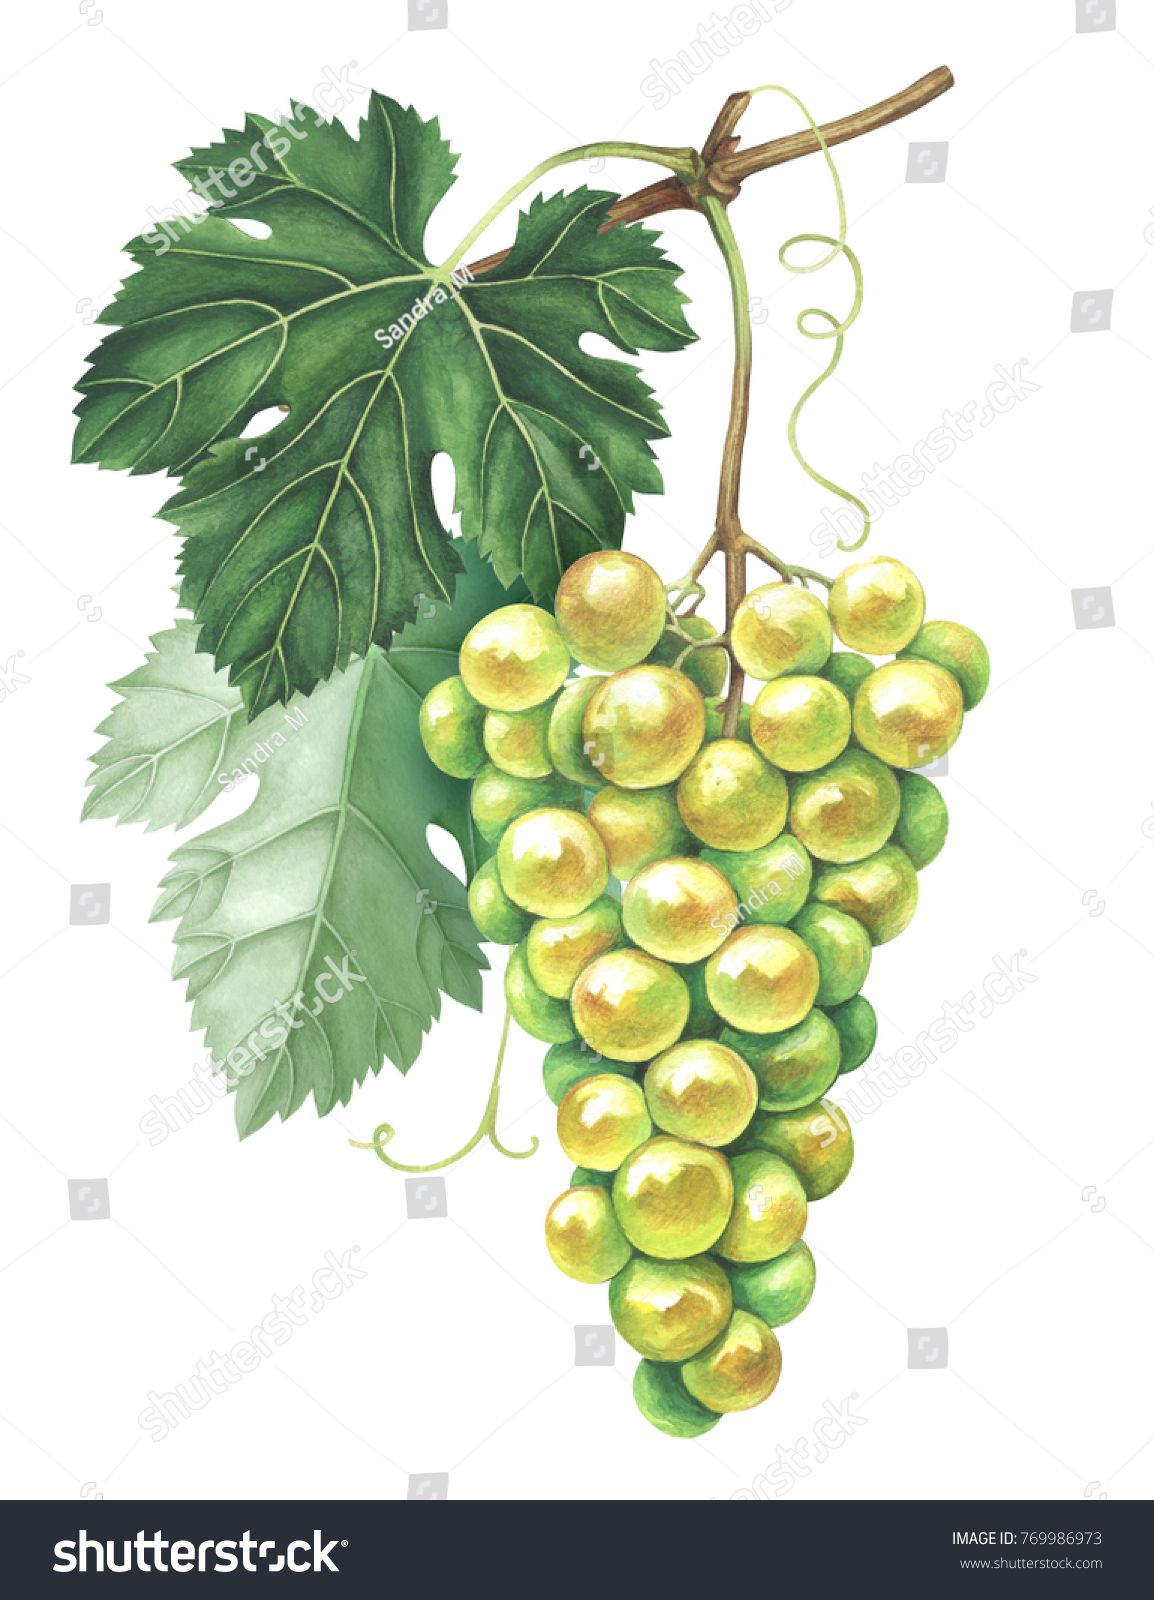 Bunch of green grapes isolated on white background. Hand